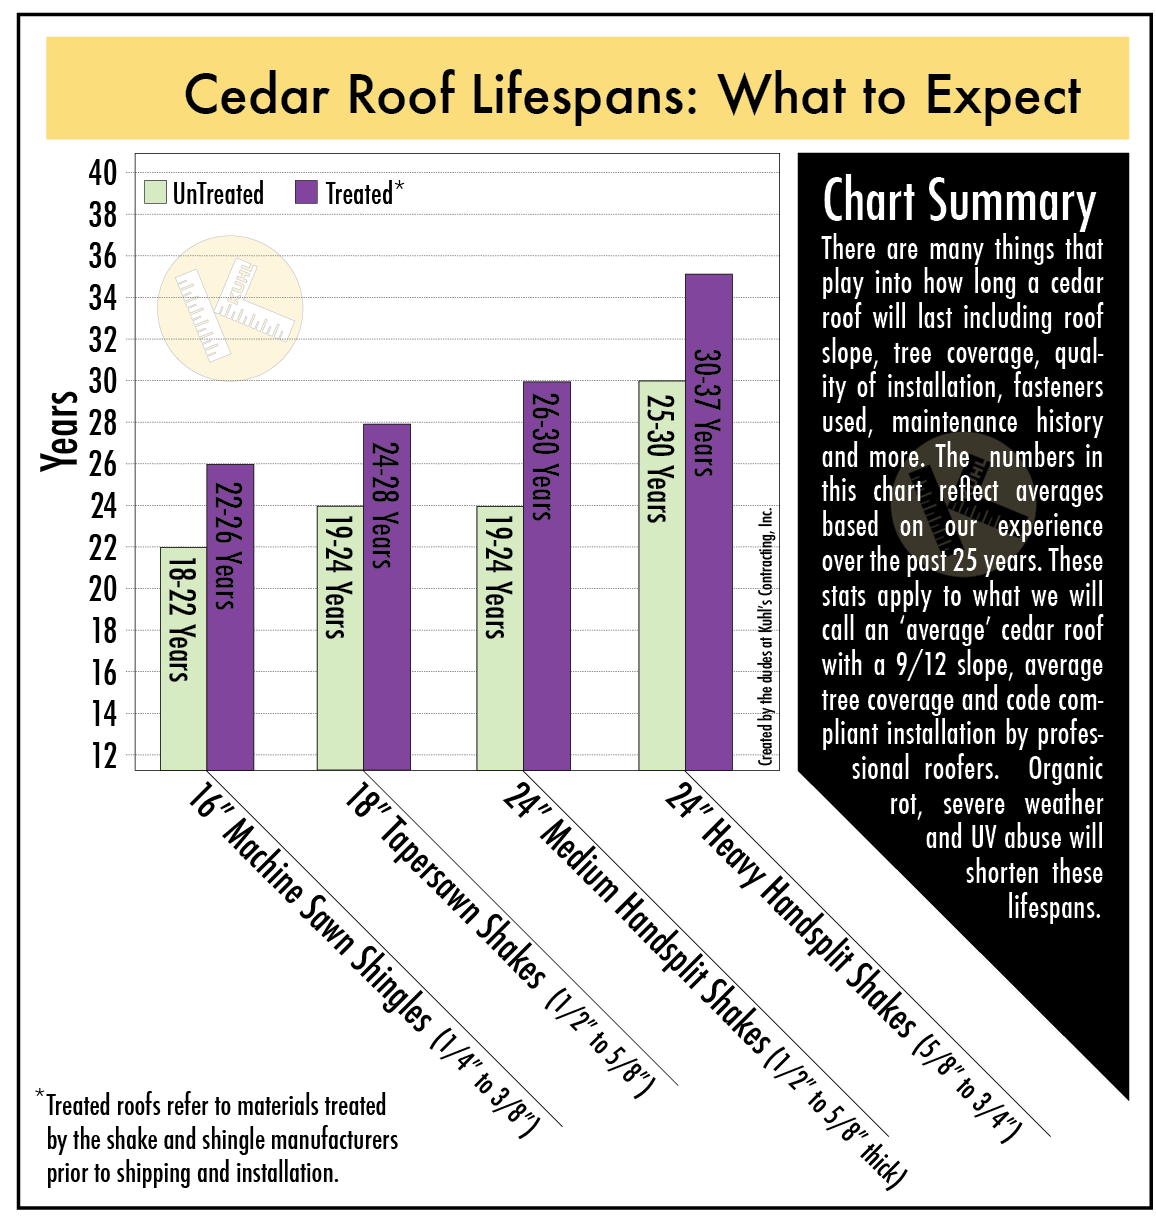 Comparing Wood Roof Life Spans in Minneapolis